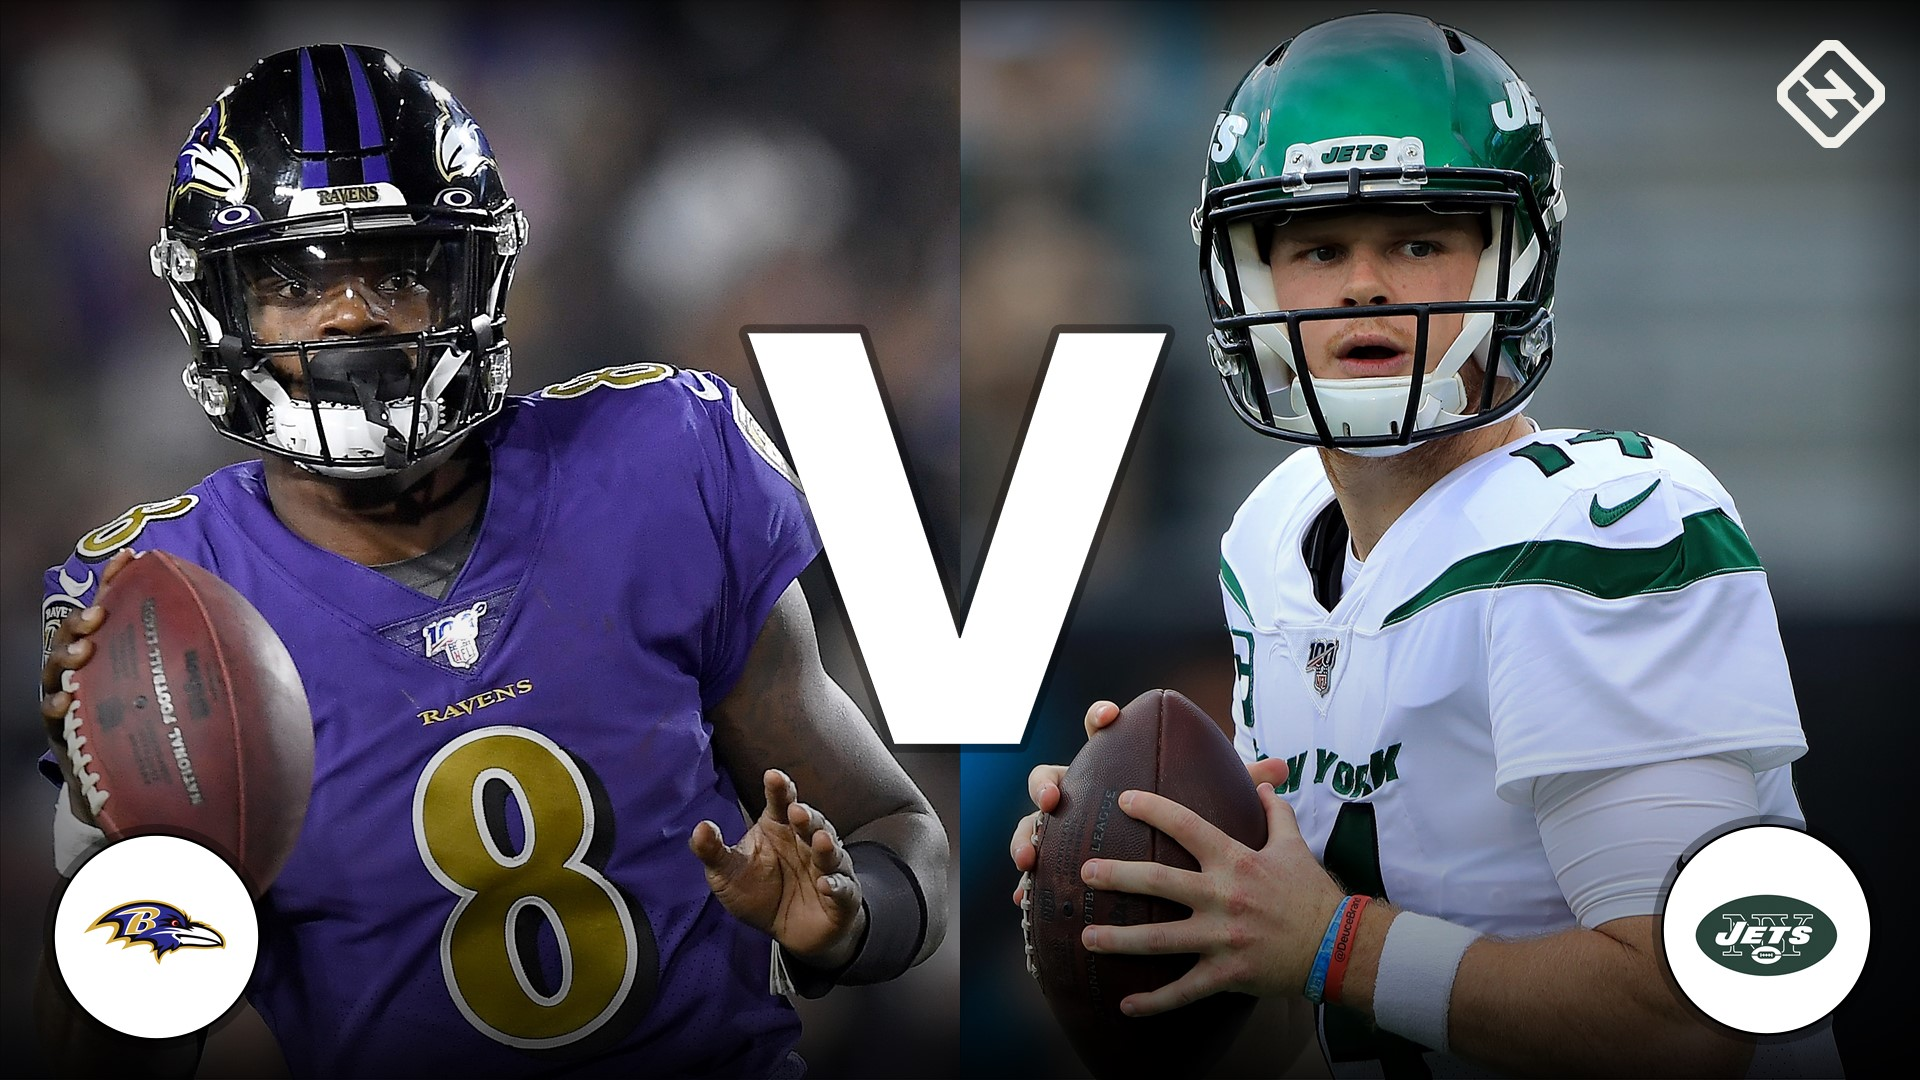 What Channel Is Jets Vs Ravens On Today Schedule Time For Thursday Night Football Game Sporting News Check out the 2000 week 17 game highlights between the new york jets and baltimore ravens! what channel is jets vs ravens on